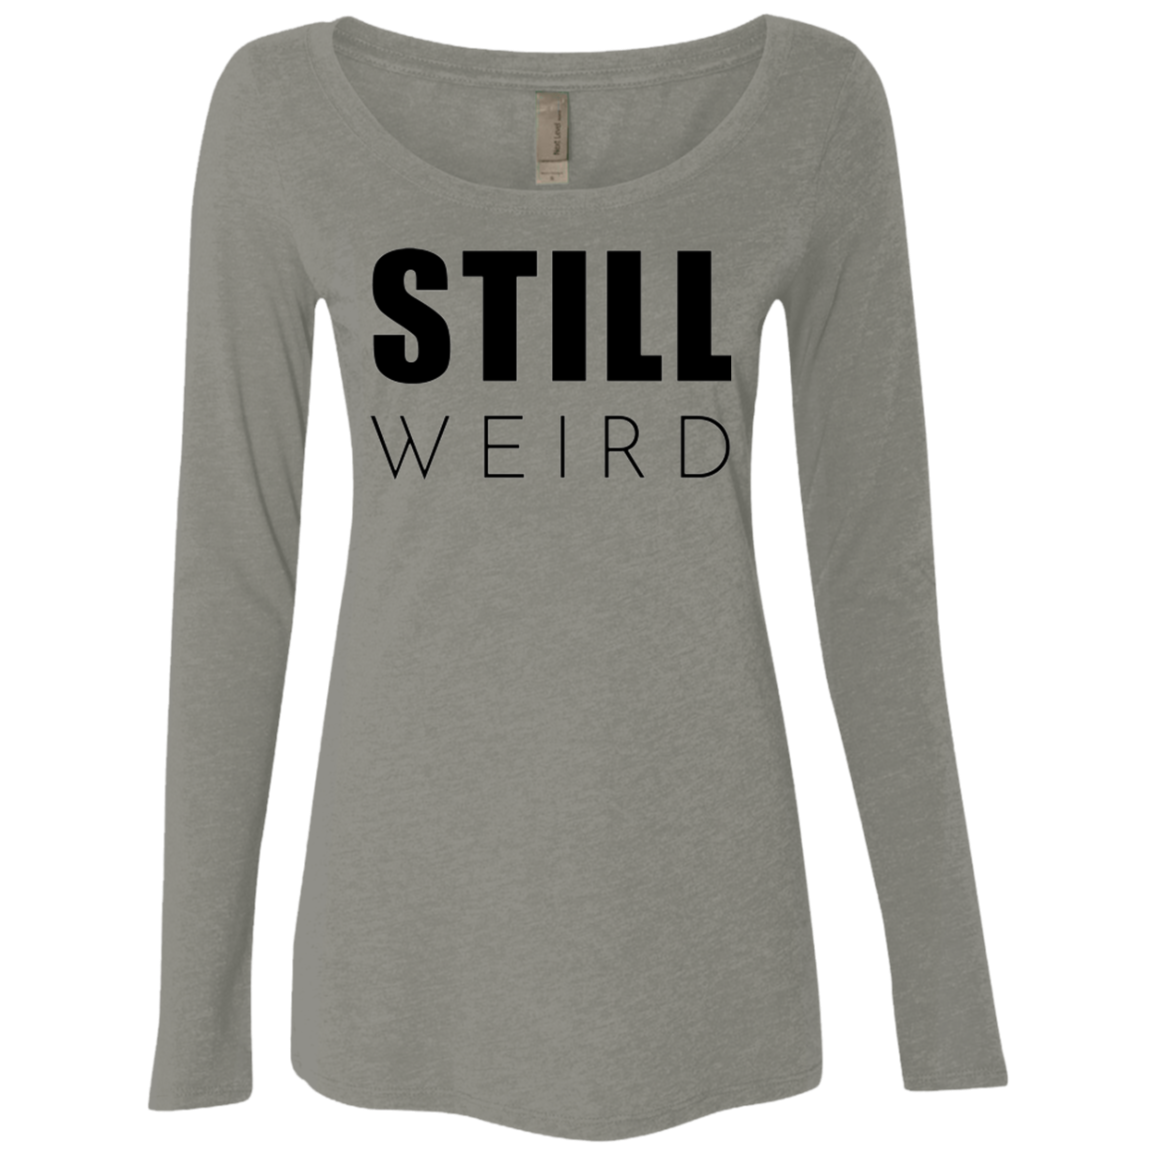 Still Weird Women's Long Sleeve Tee